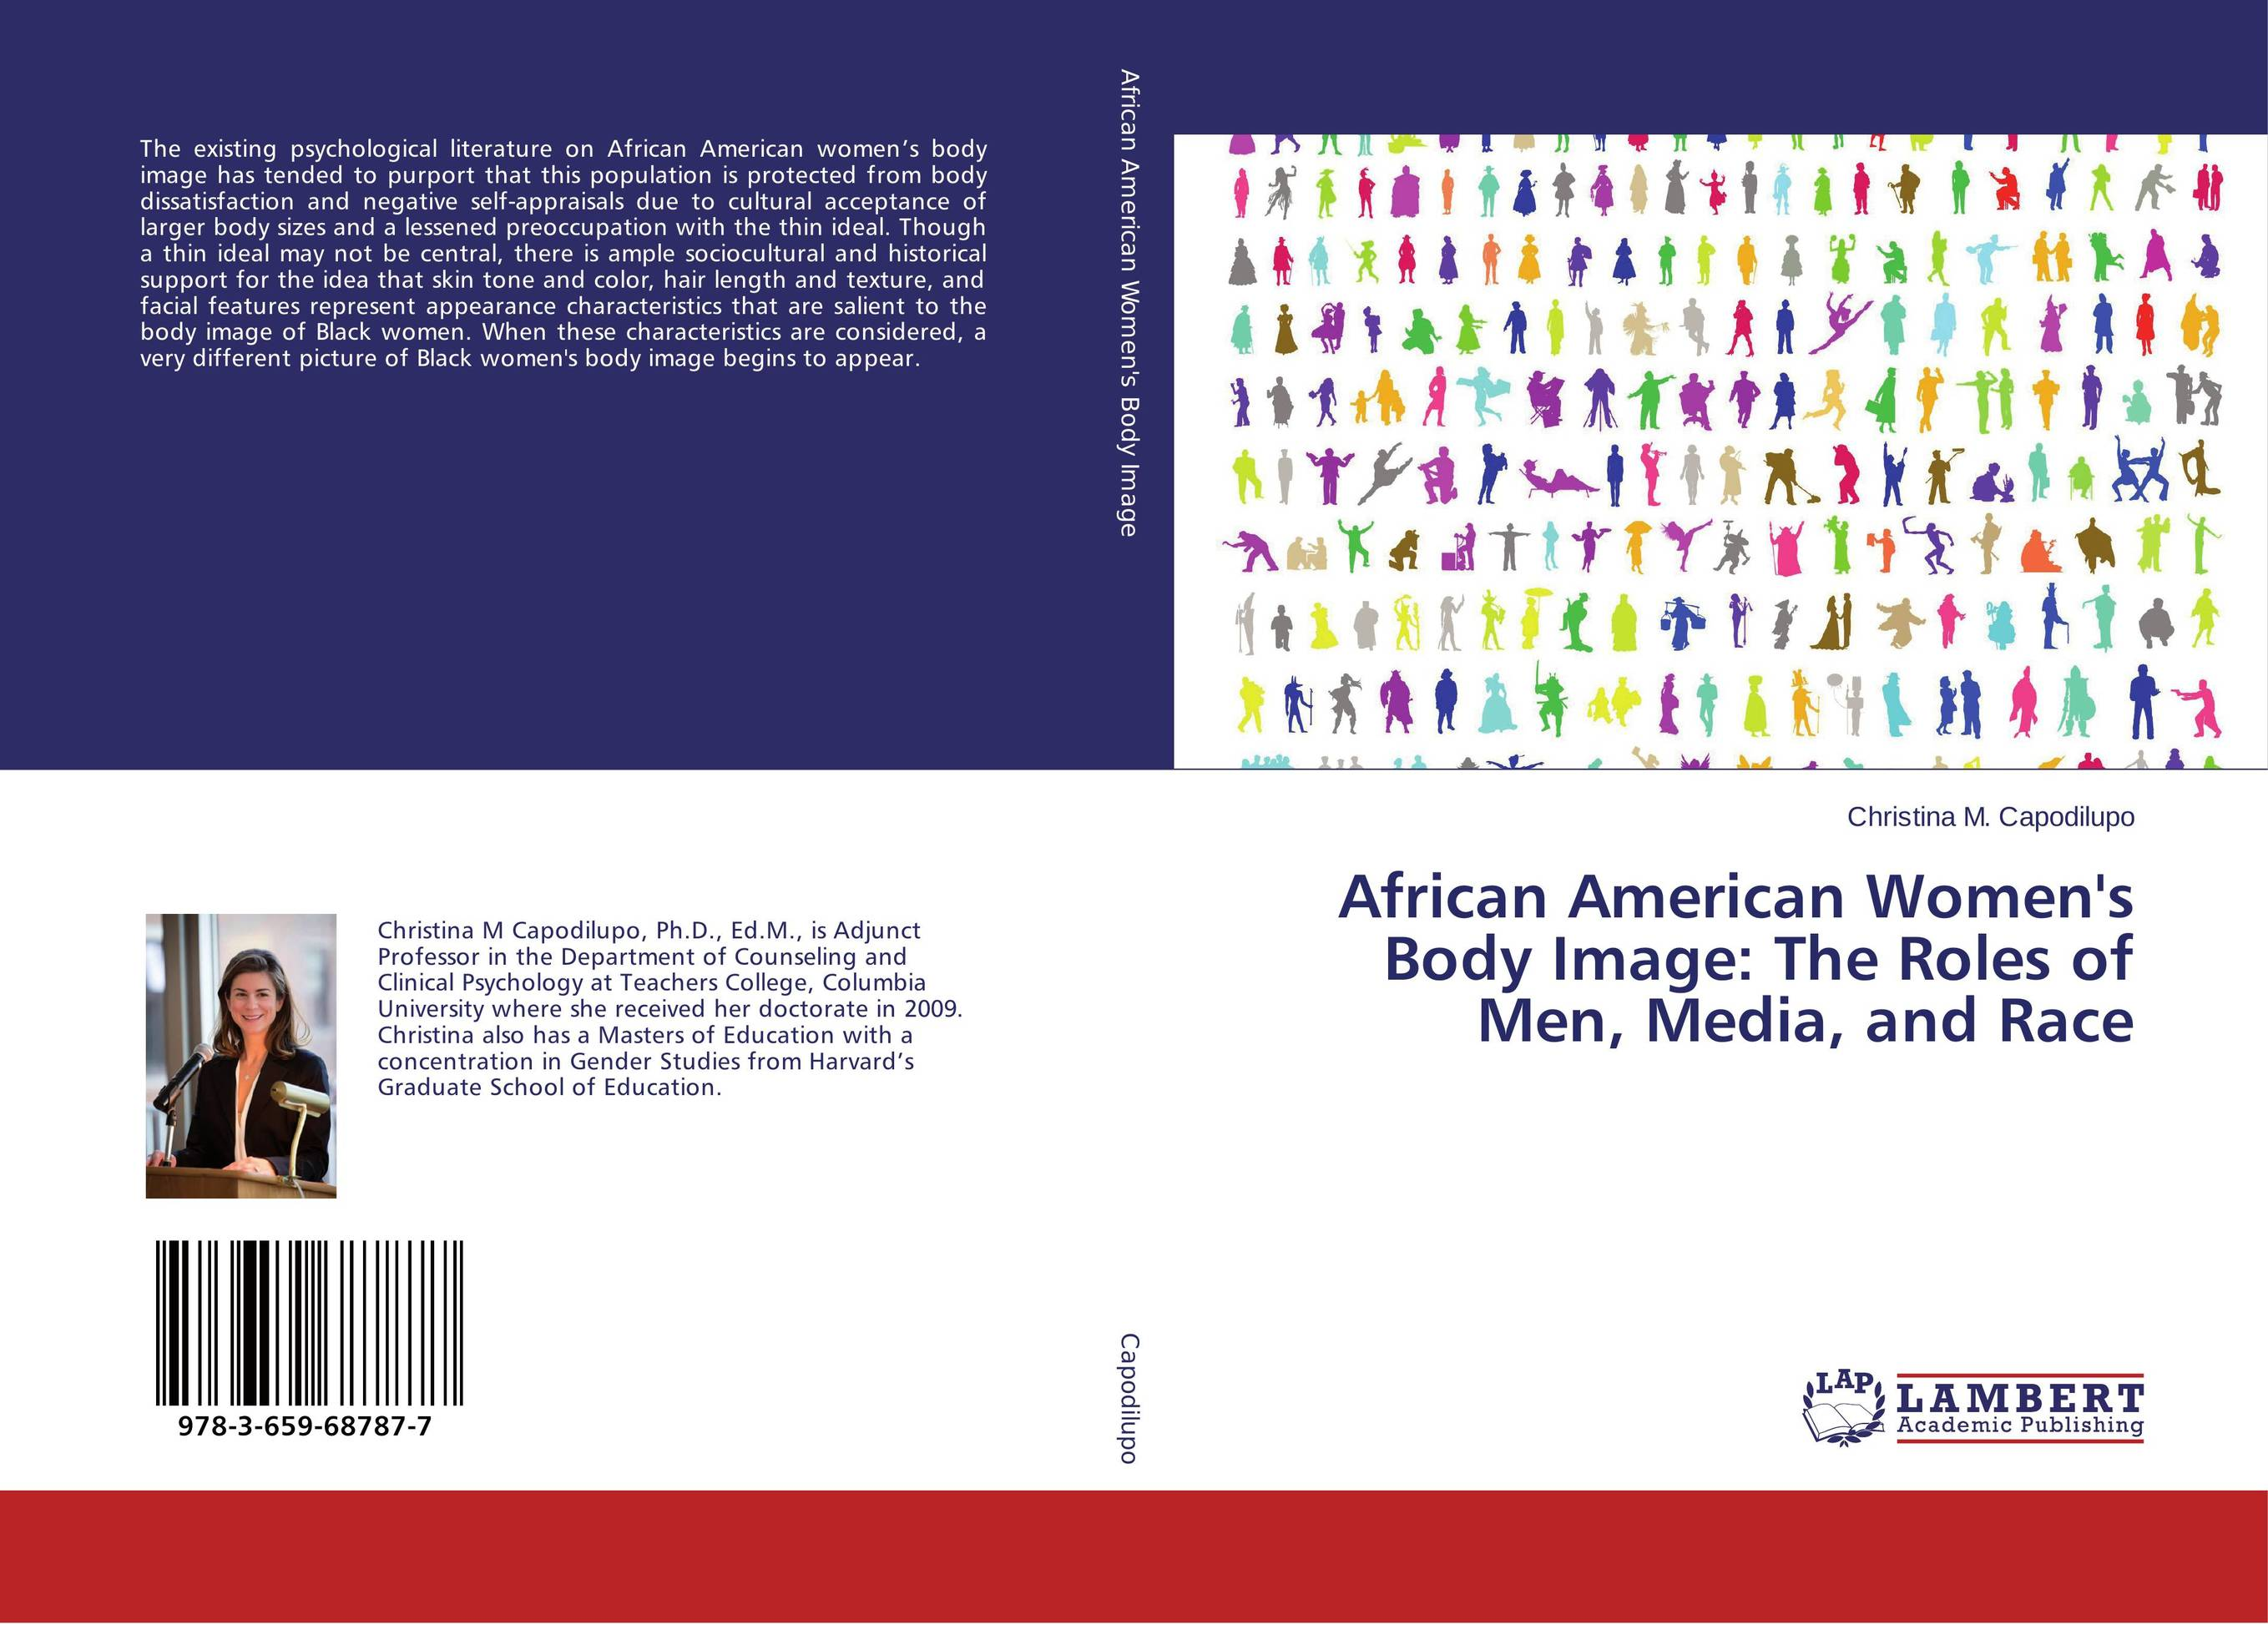 African American Women's Body Image: The Roles of Men, Media, and Race fly away – the great african american cultural migrations